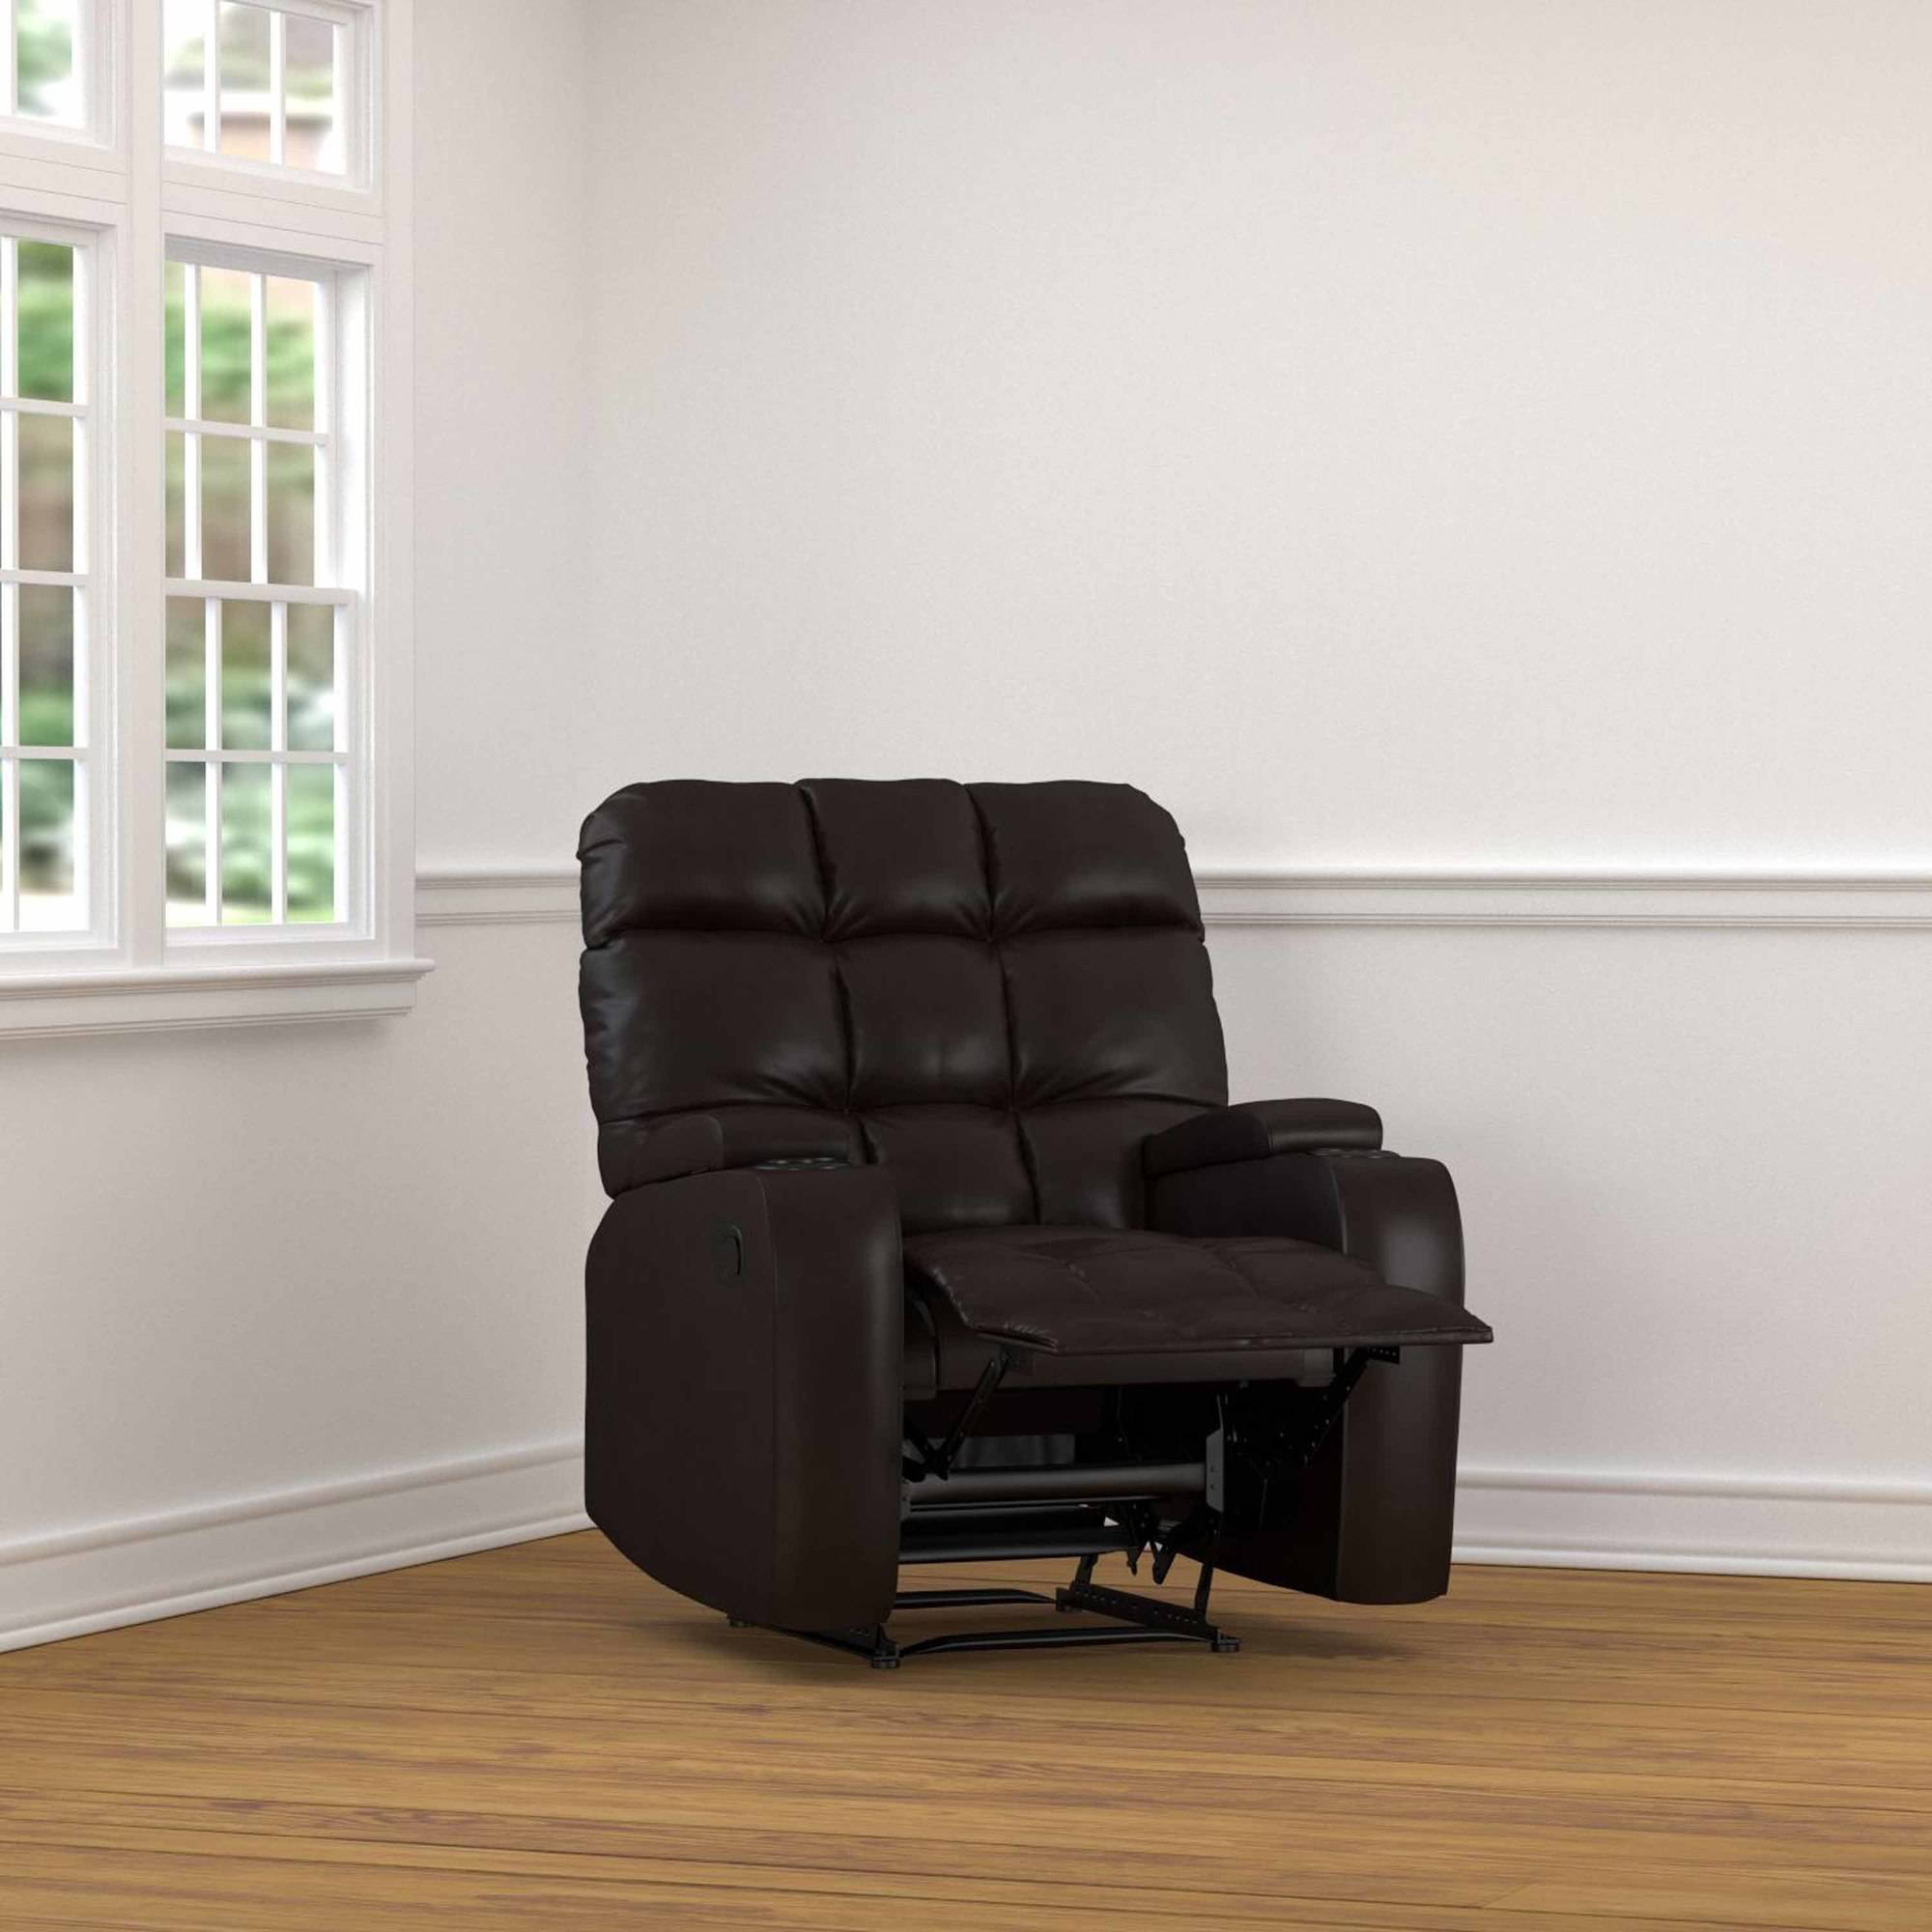 wall hugger recliner chair best gaming chairs prolounger storage in renu leather walmart com